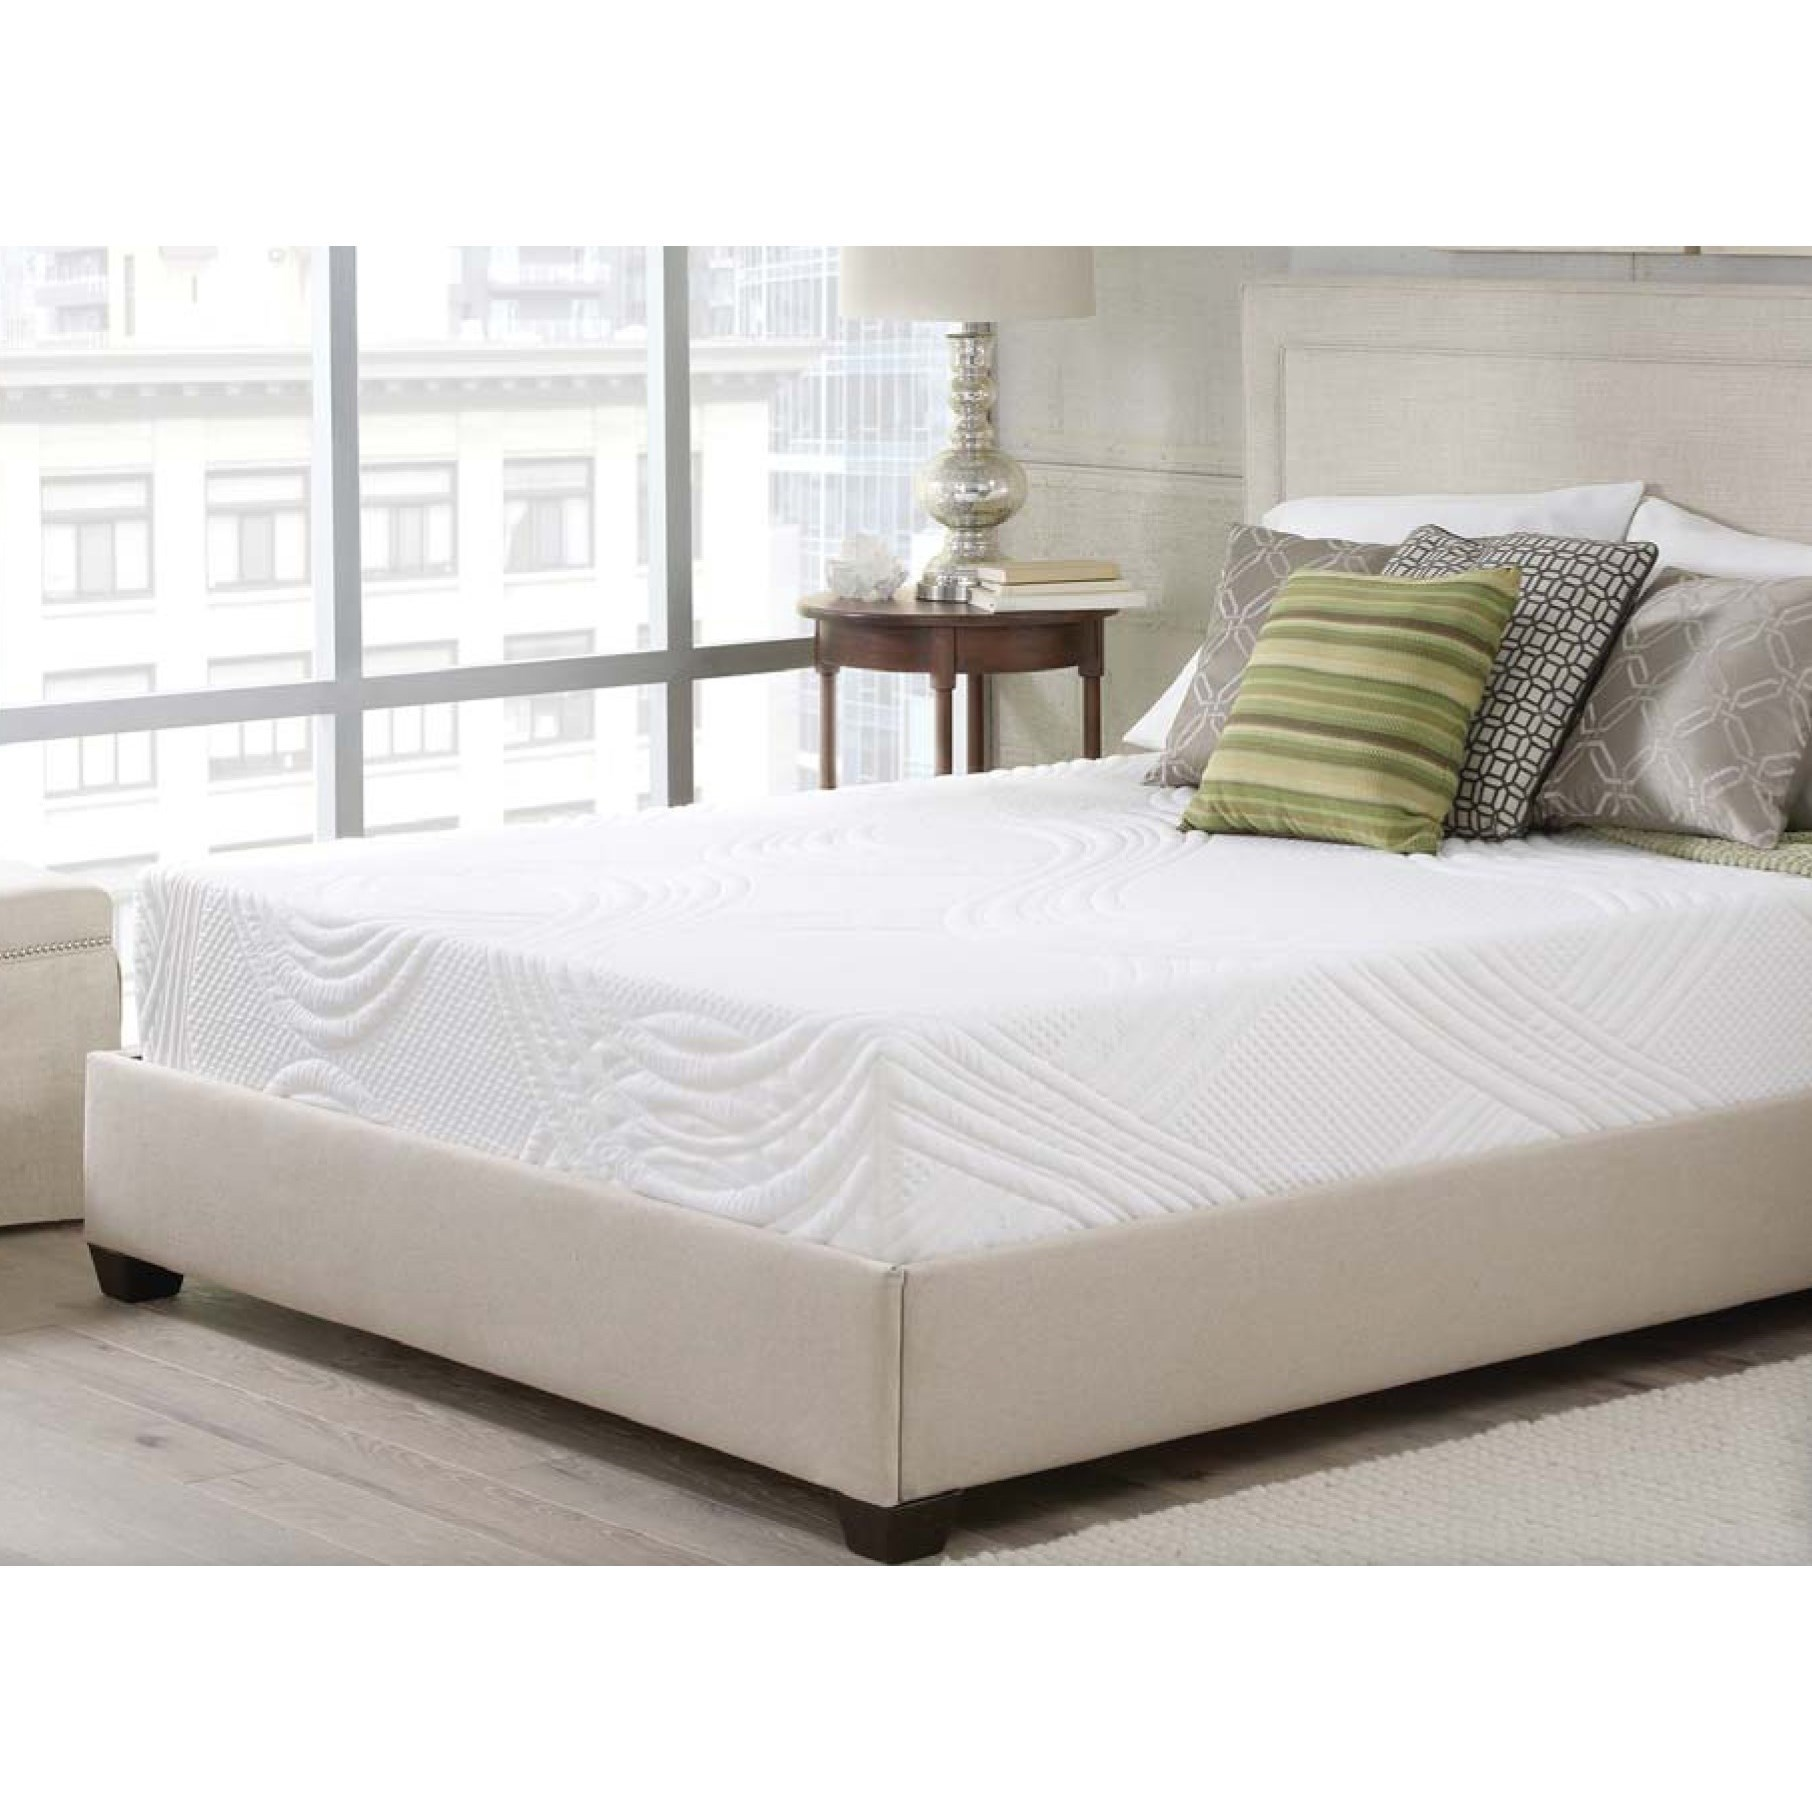 memory foam mattress box. Memory Foam Mattress Box. In A Corsicana Luxen Bed Box